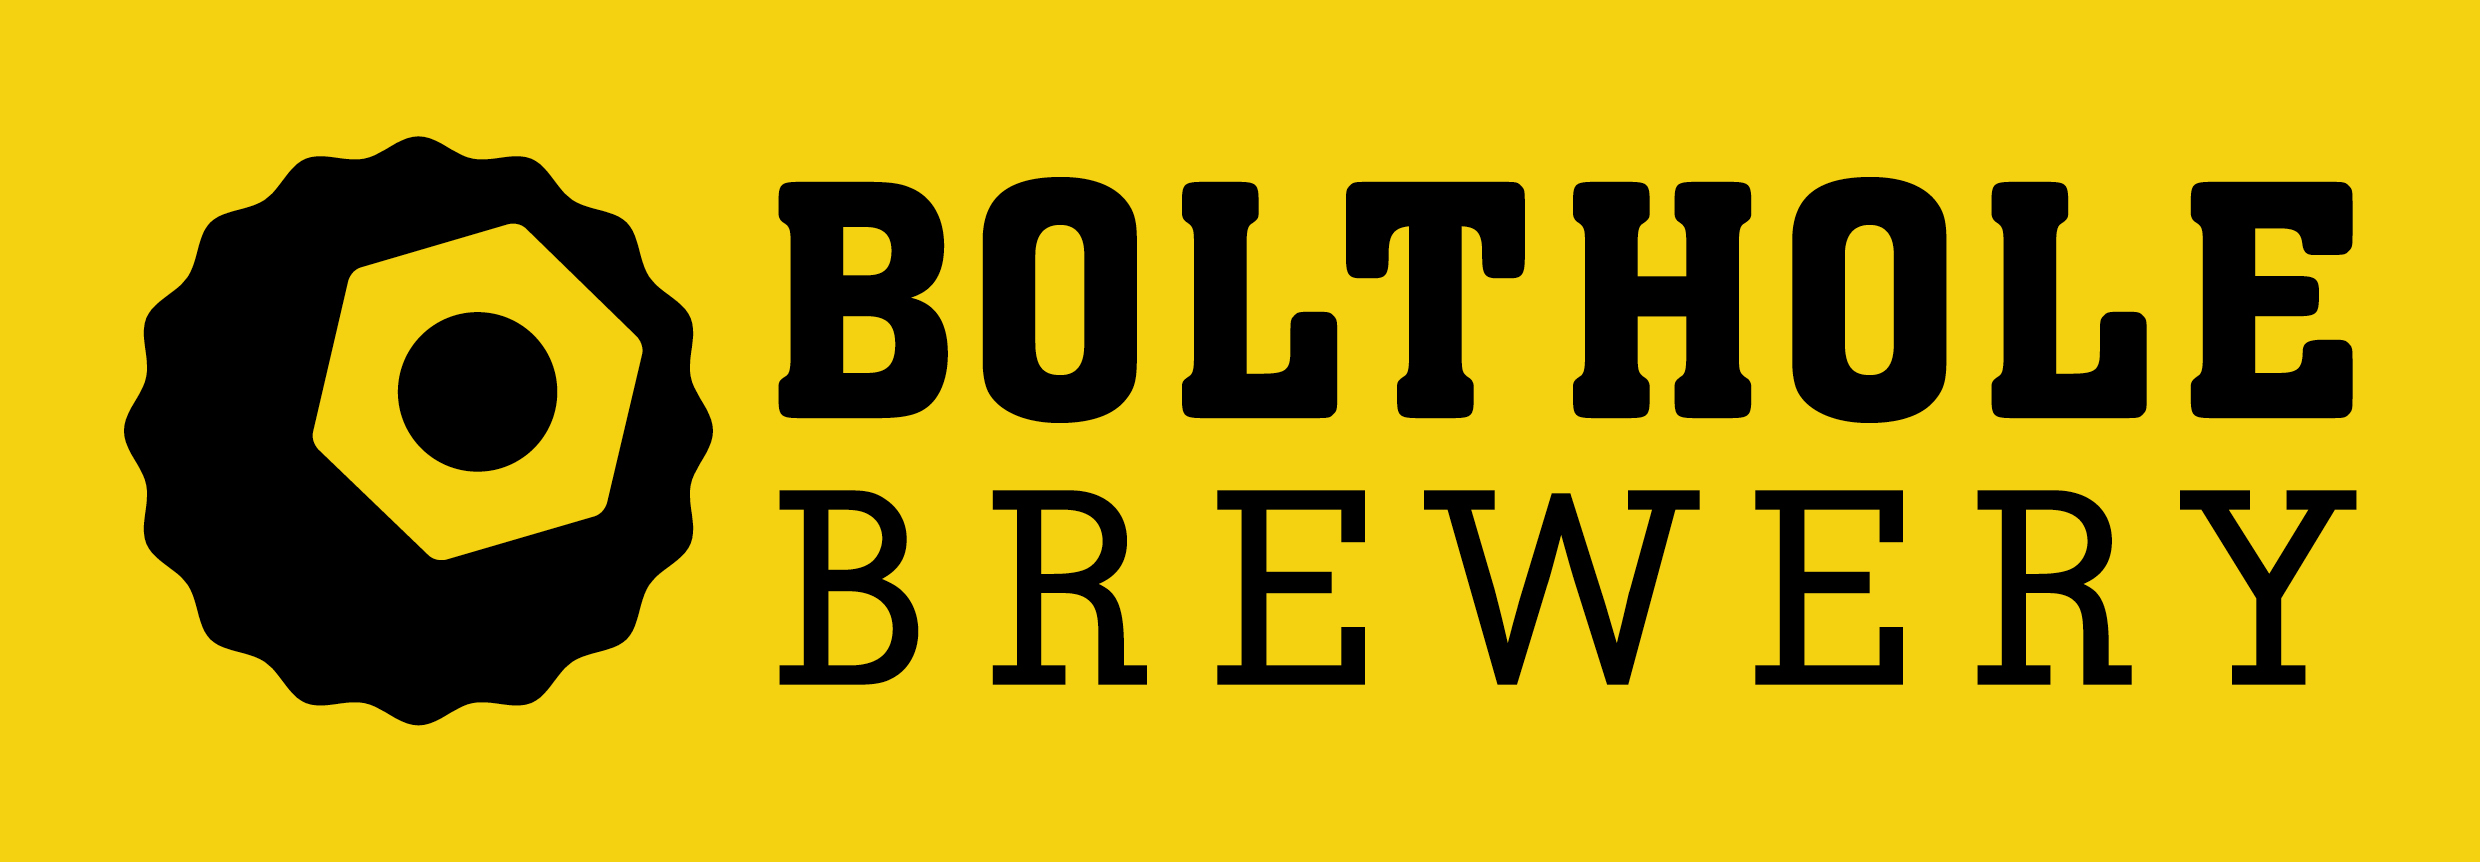 BoltHole Brewery